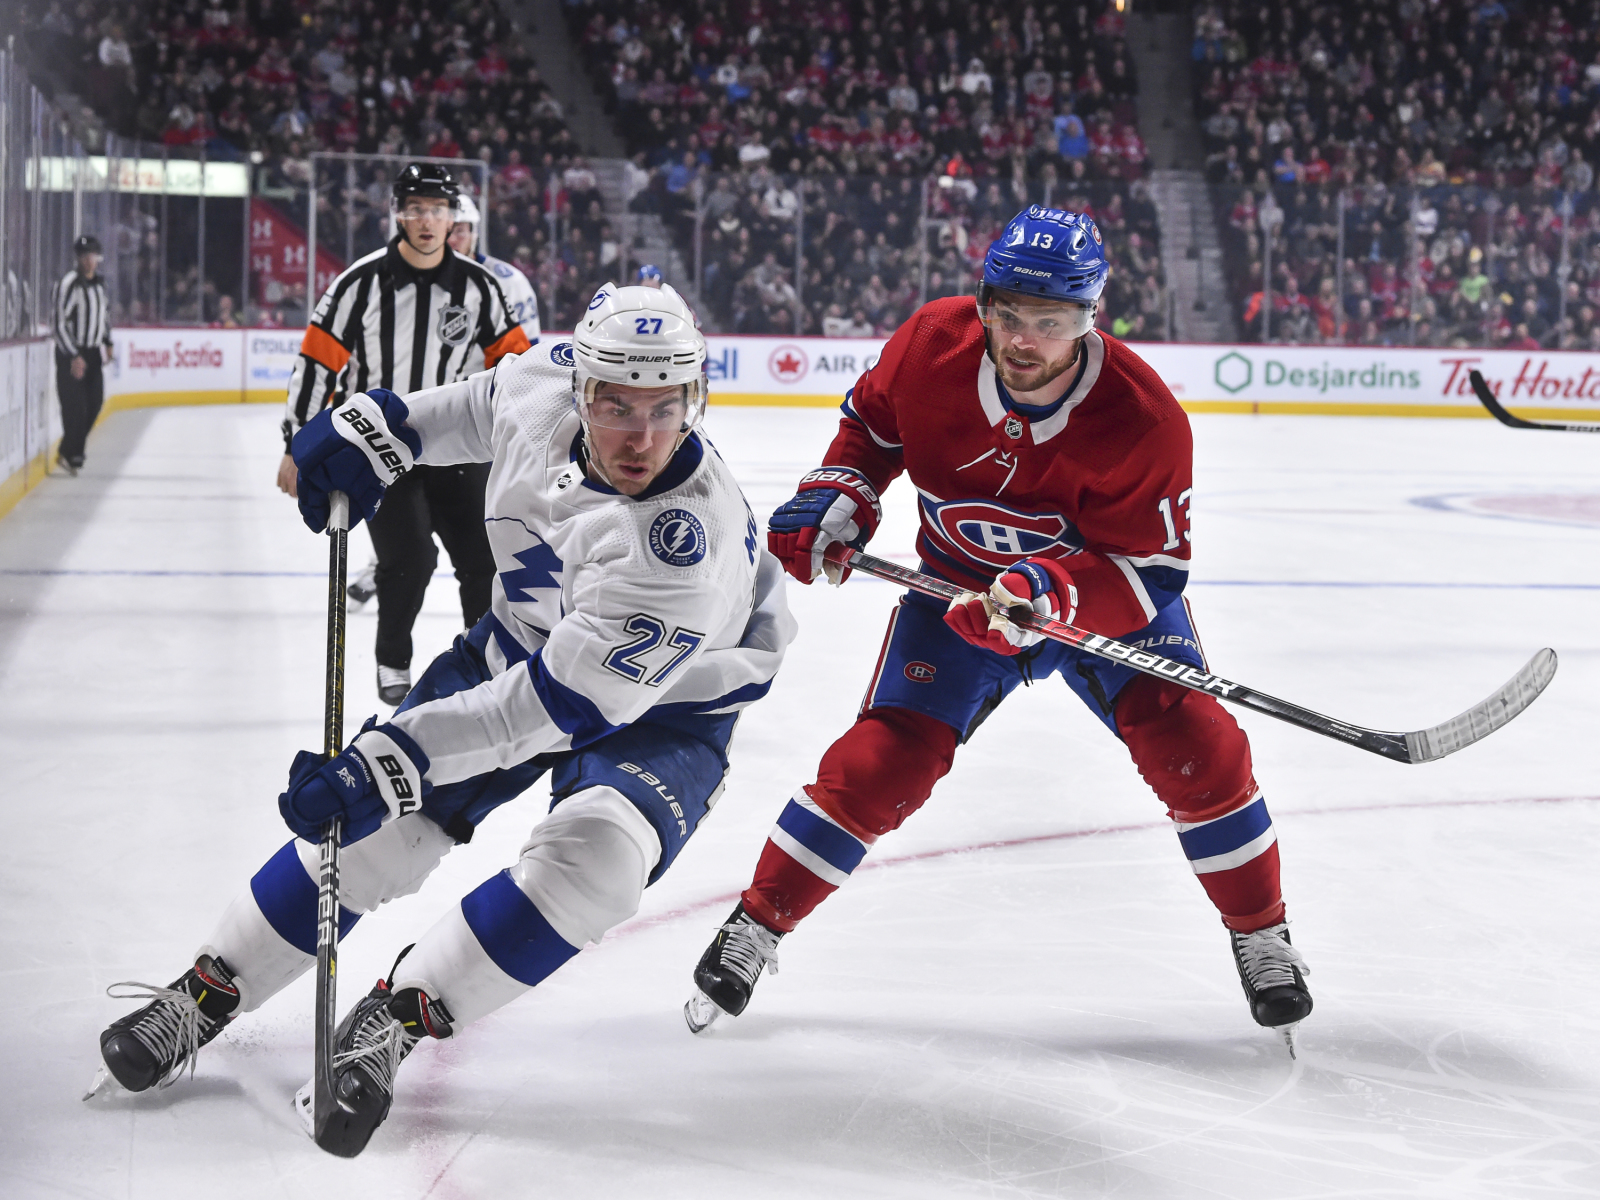 Tampa Bay Lightning and Montreal Canadiens could be trade partners